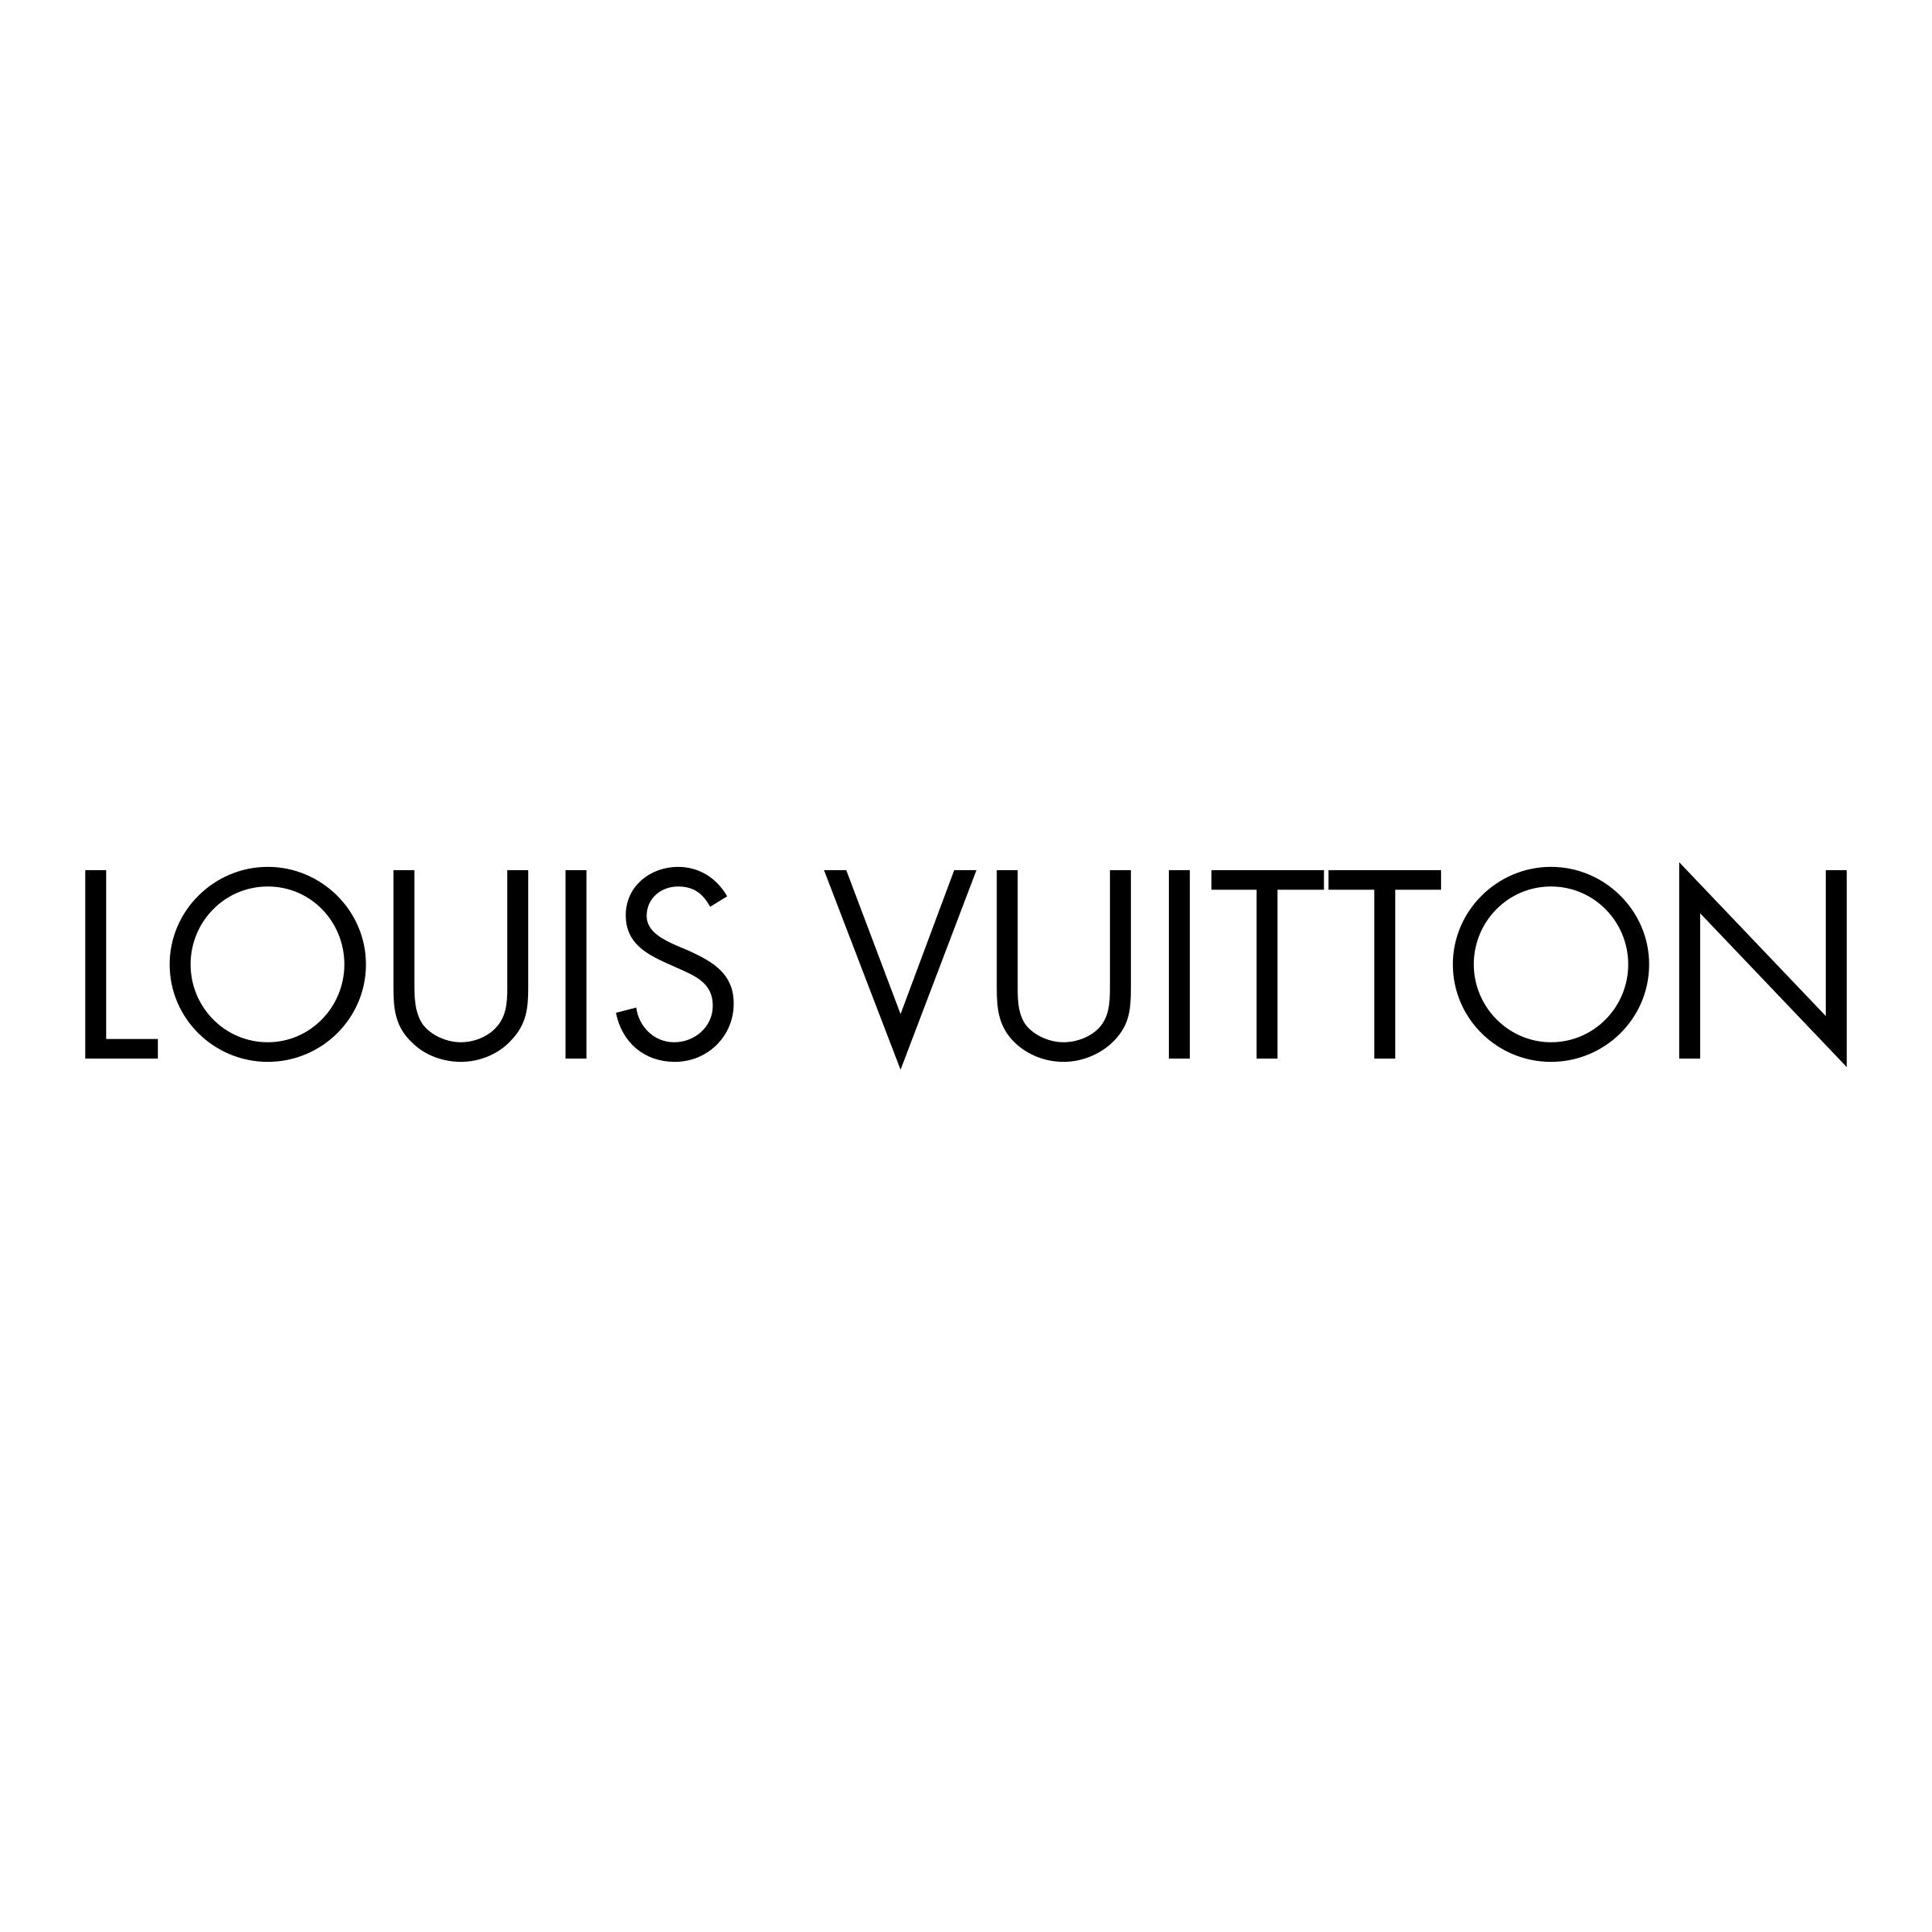 Louis Vuitton Transparent Logo Logodix